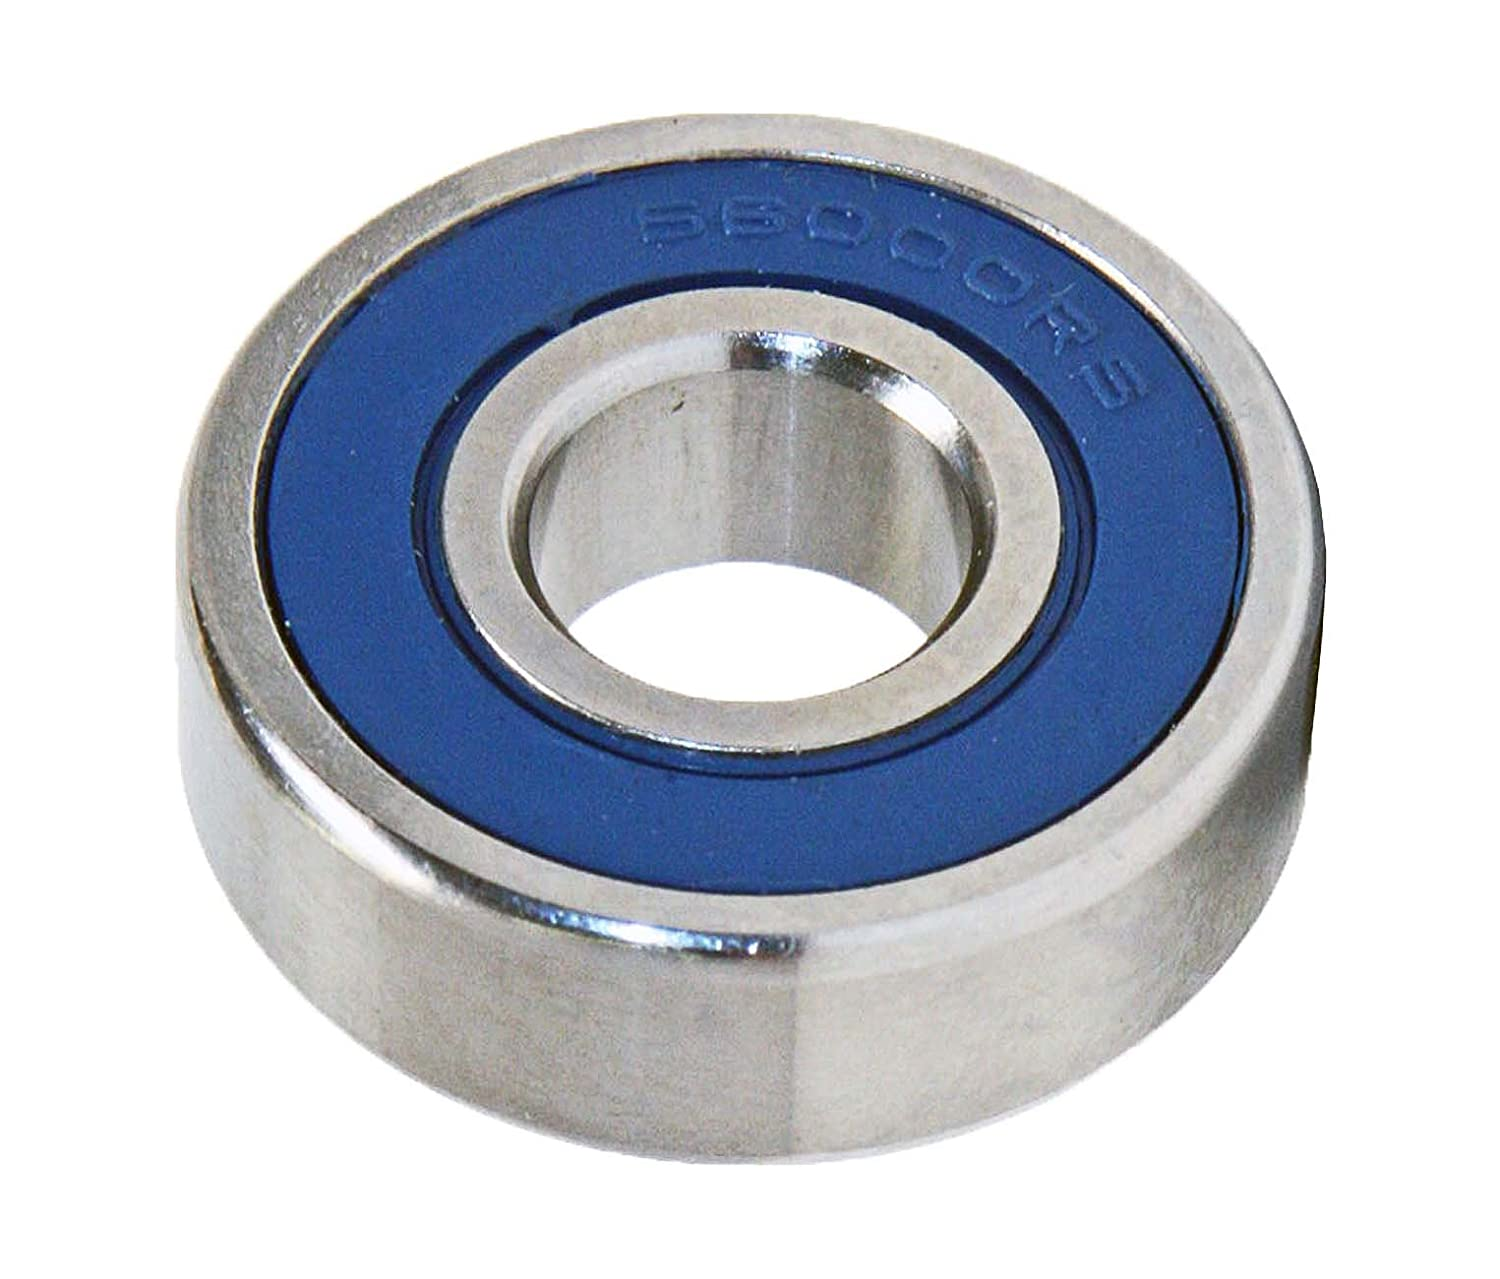 Stainless Steel Hybrid Ceramic Ball Bearings 10*26*8 10PC S6000-2RS 10x26x8 mm